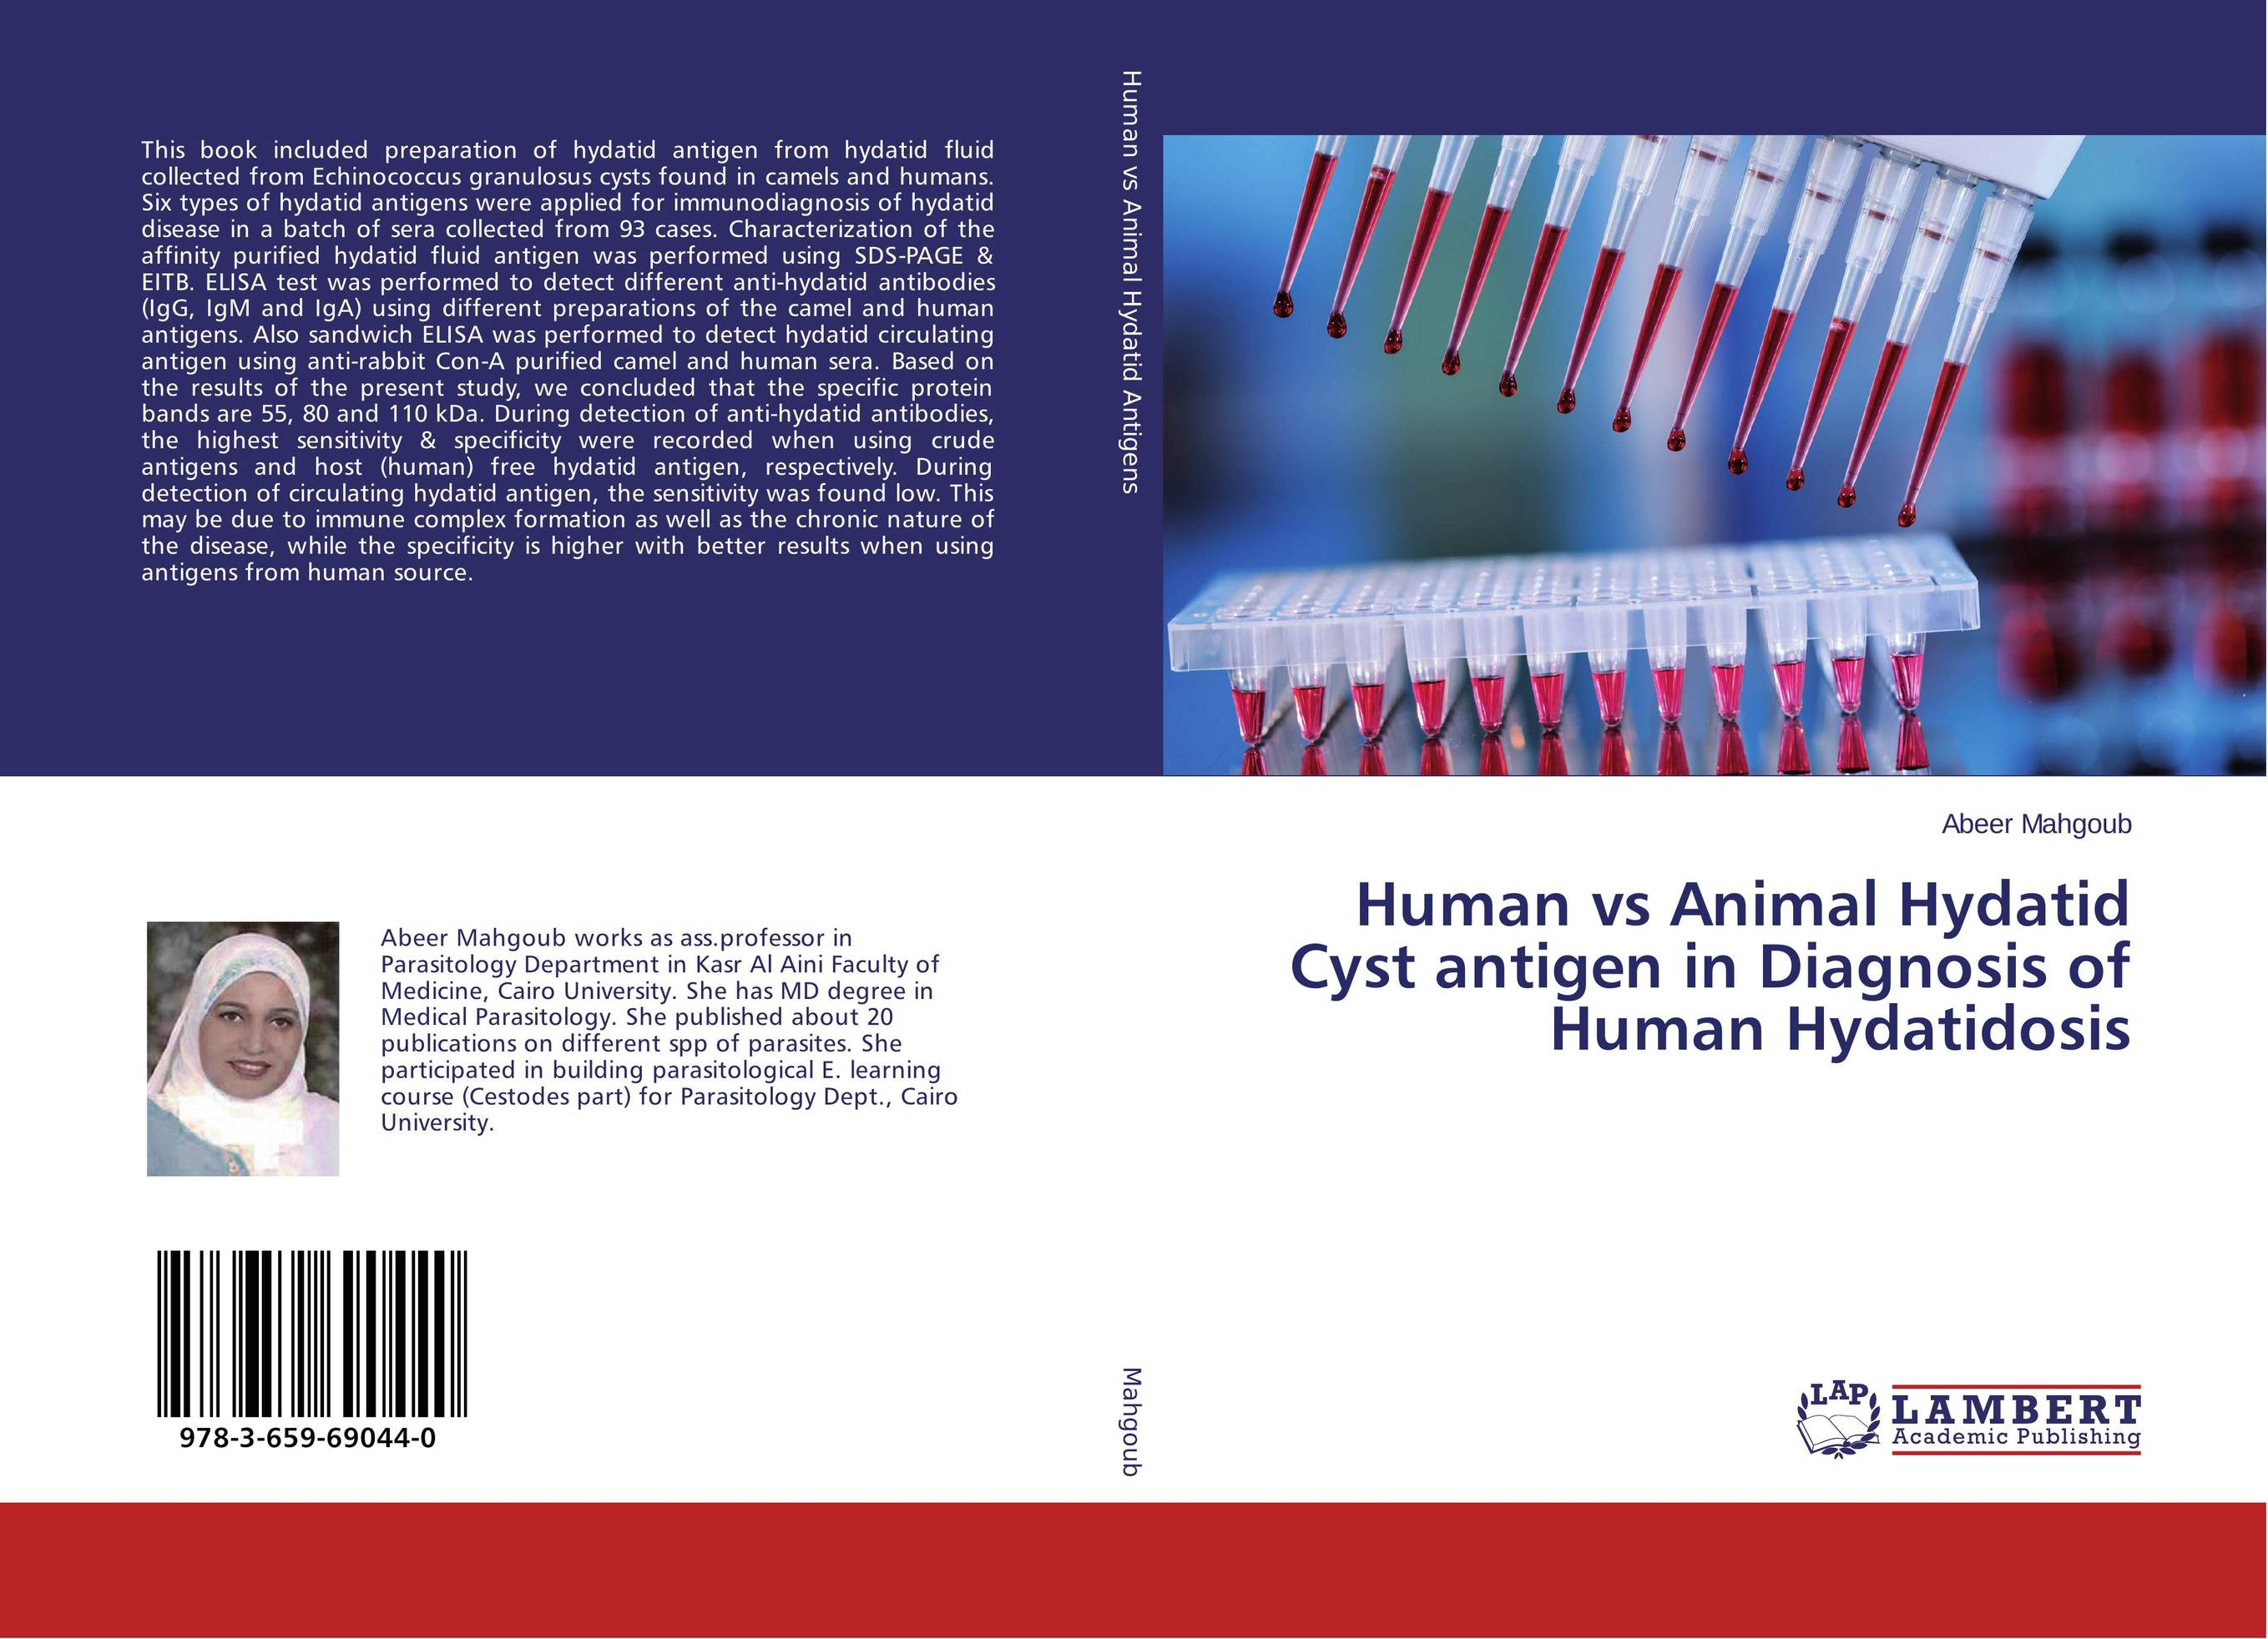 Human vs Animal Hydatid Cyst antigen in Diagnosis of Human Hydatidosis tapan kumar dutta and parimal roychoudhury diagnosis and characterization of bacterial pathogens in animal